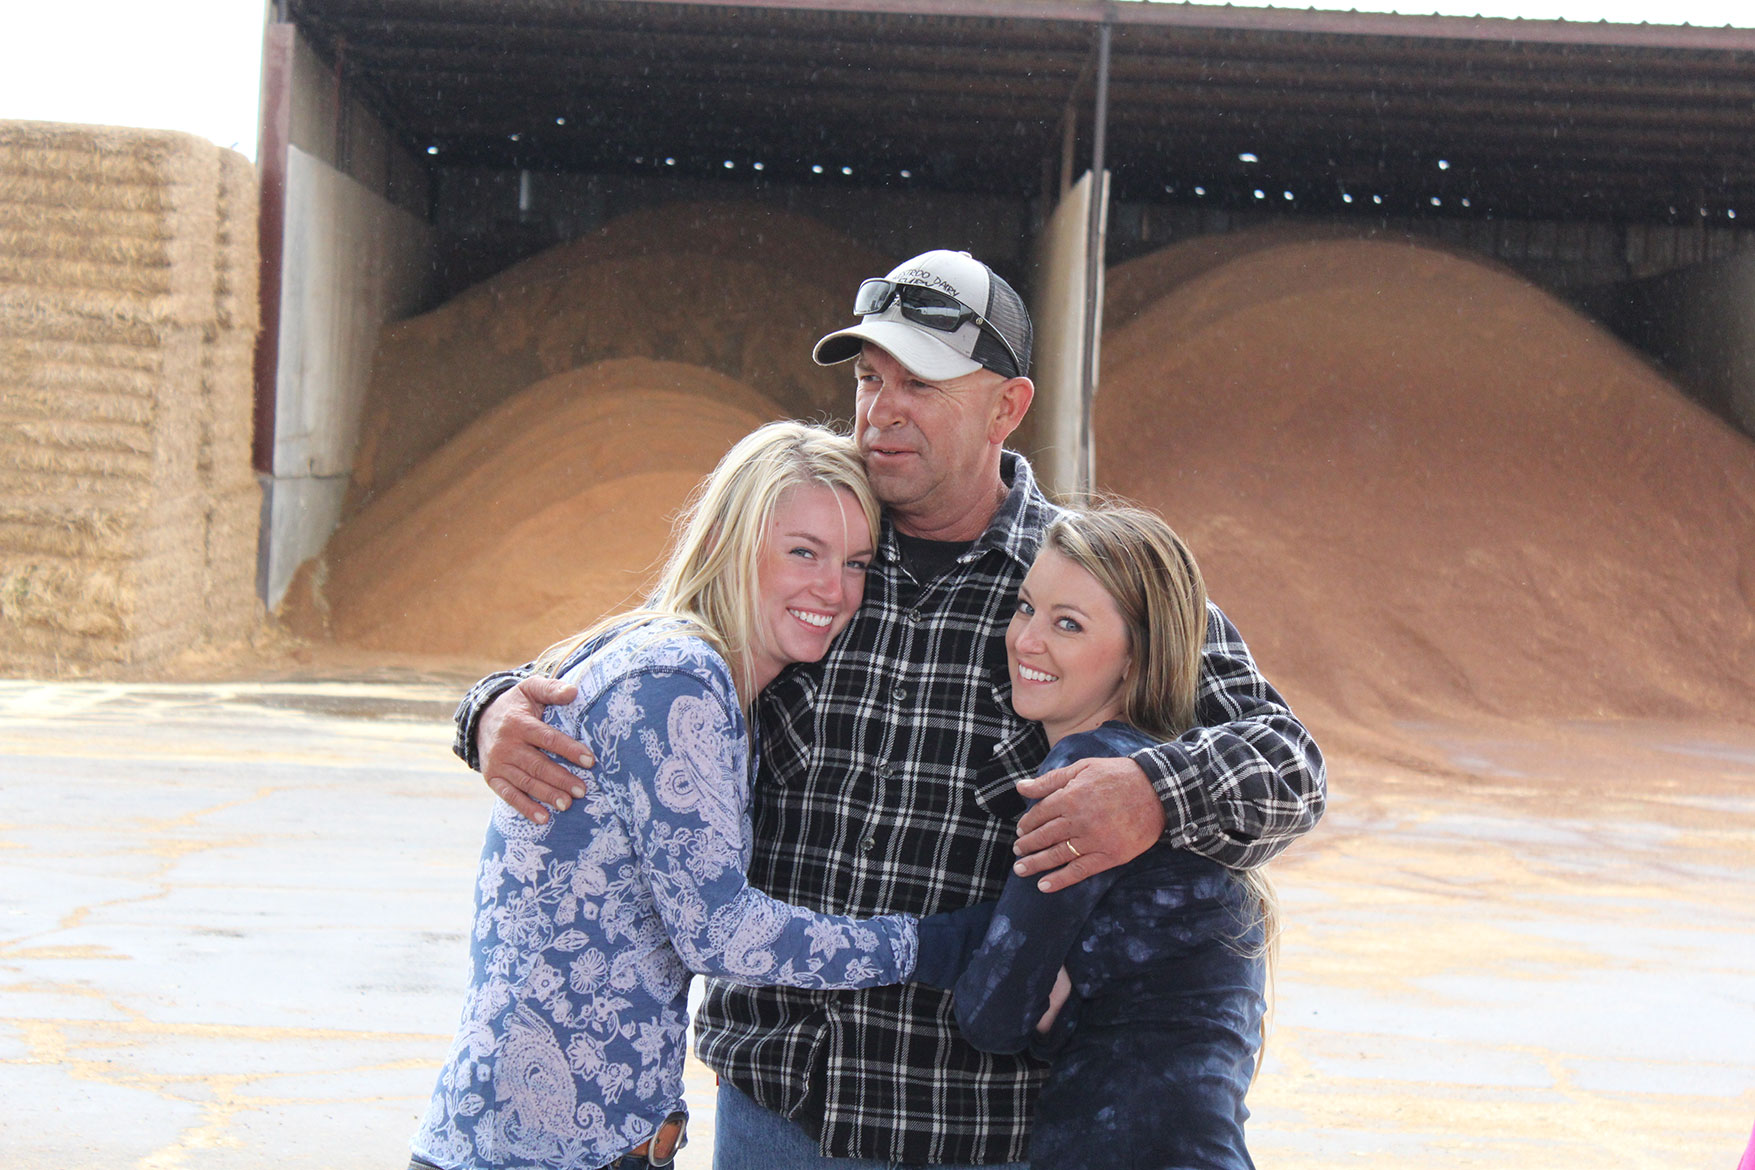 Lexie and Tara give their dad a hug in front of the feed ingredients for the herd.